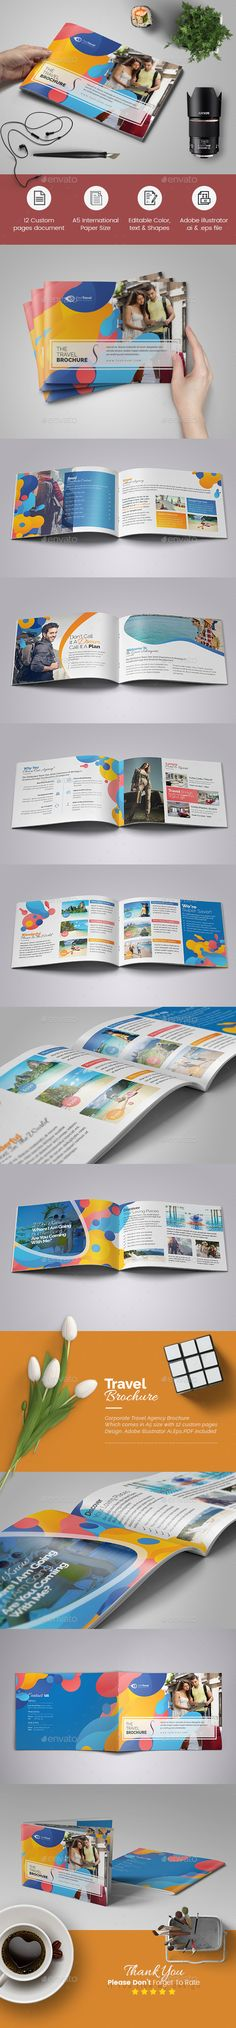 Corporate Travel Agency Brochure Template Vector EPS, AI Illustrator is very easy to use and change text,color,size,look and everything so please don't worry about changing.